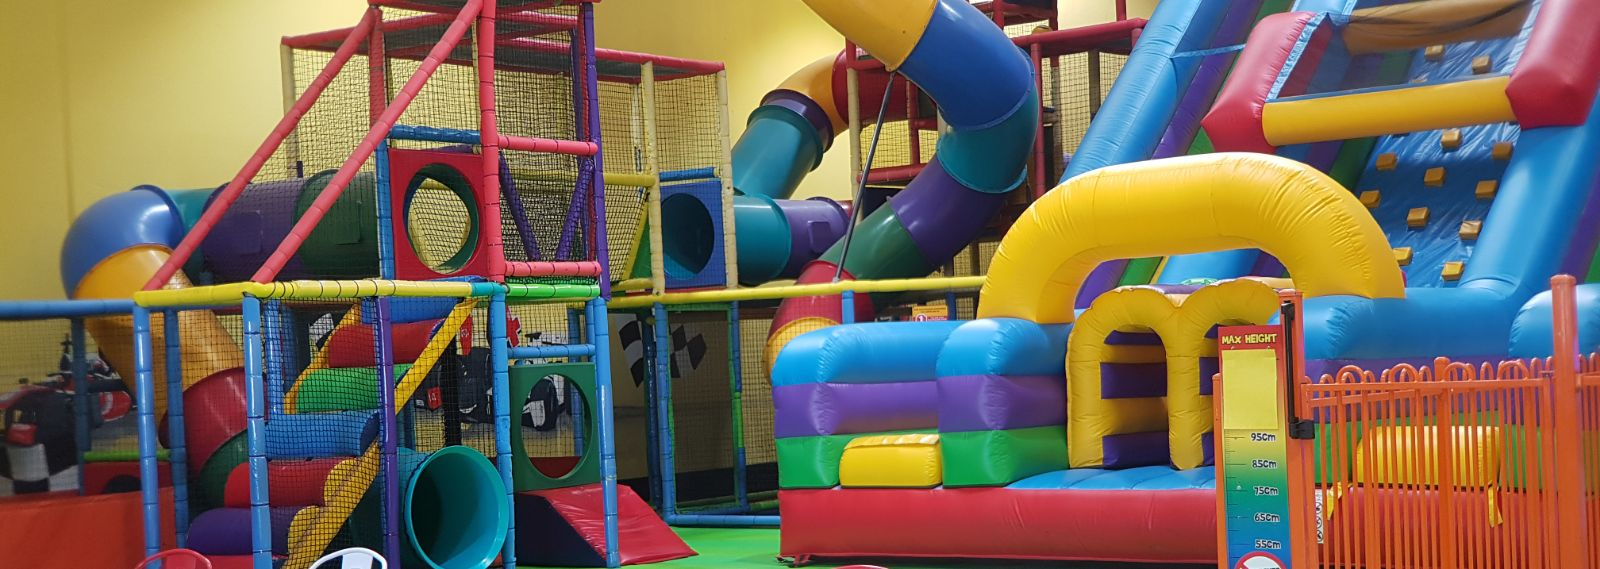 Indoor playcentre and café priced for sale in Epping $129,999 ONO